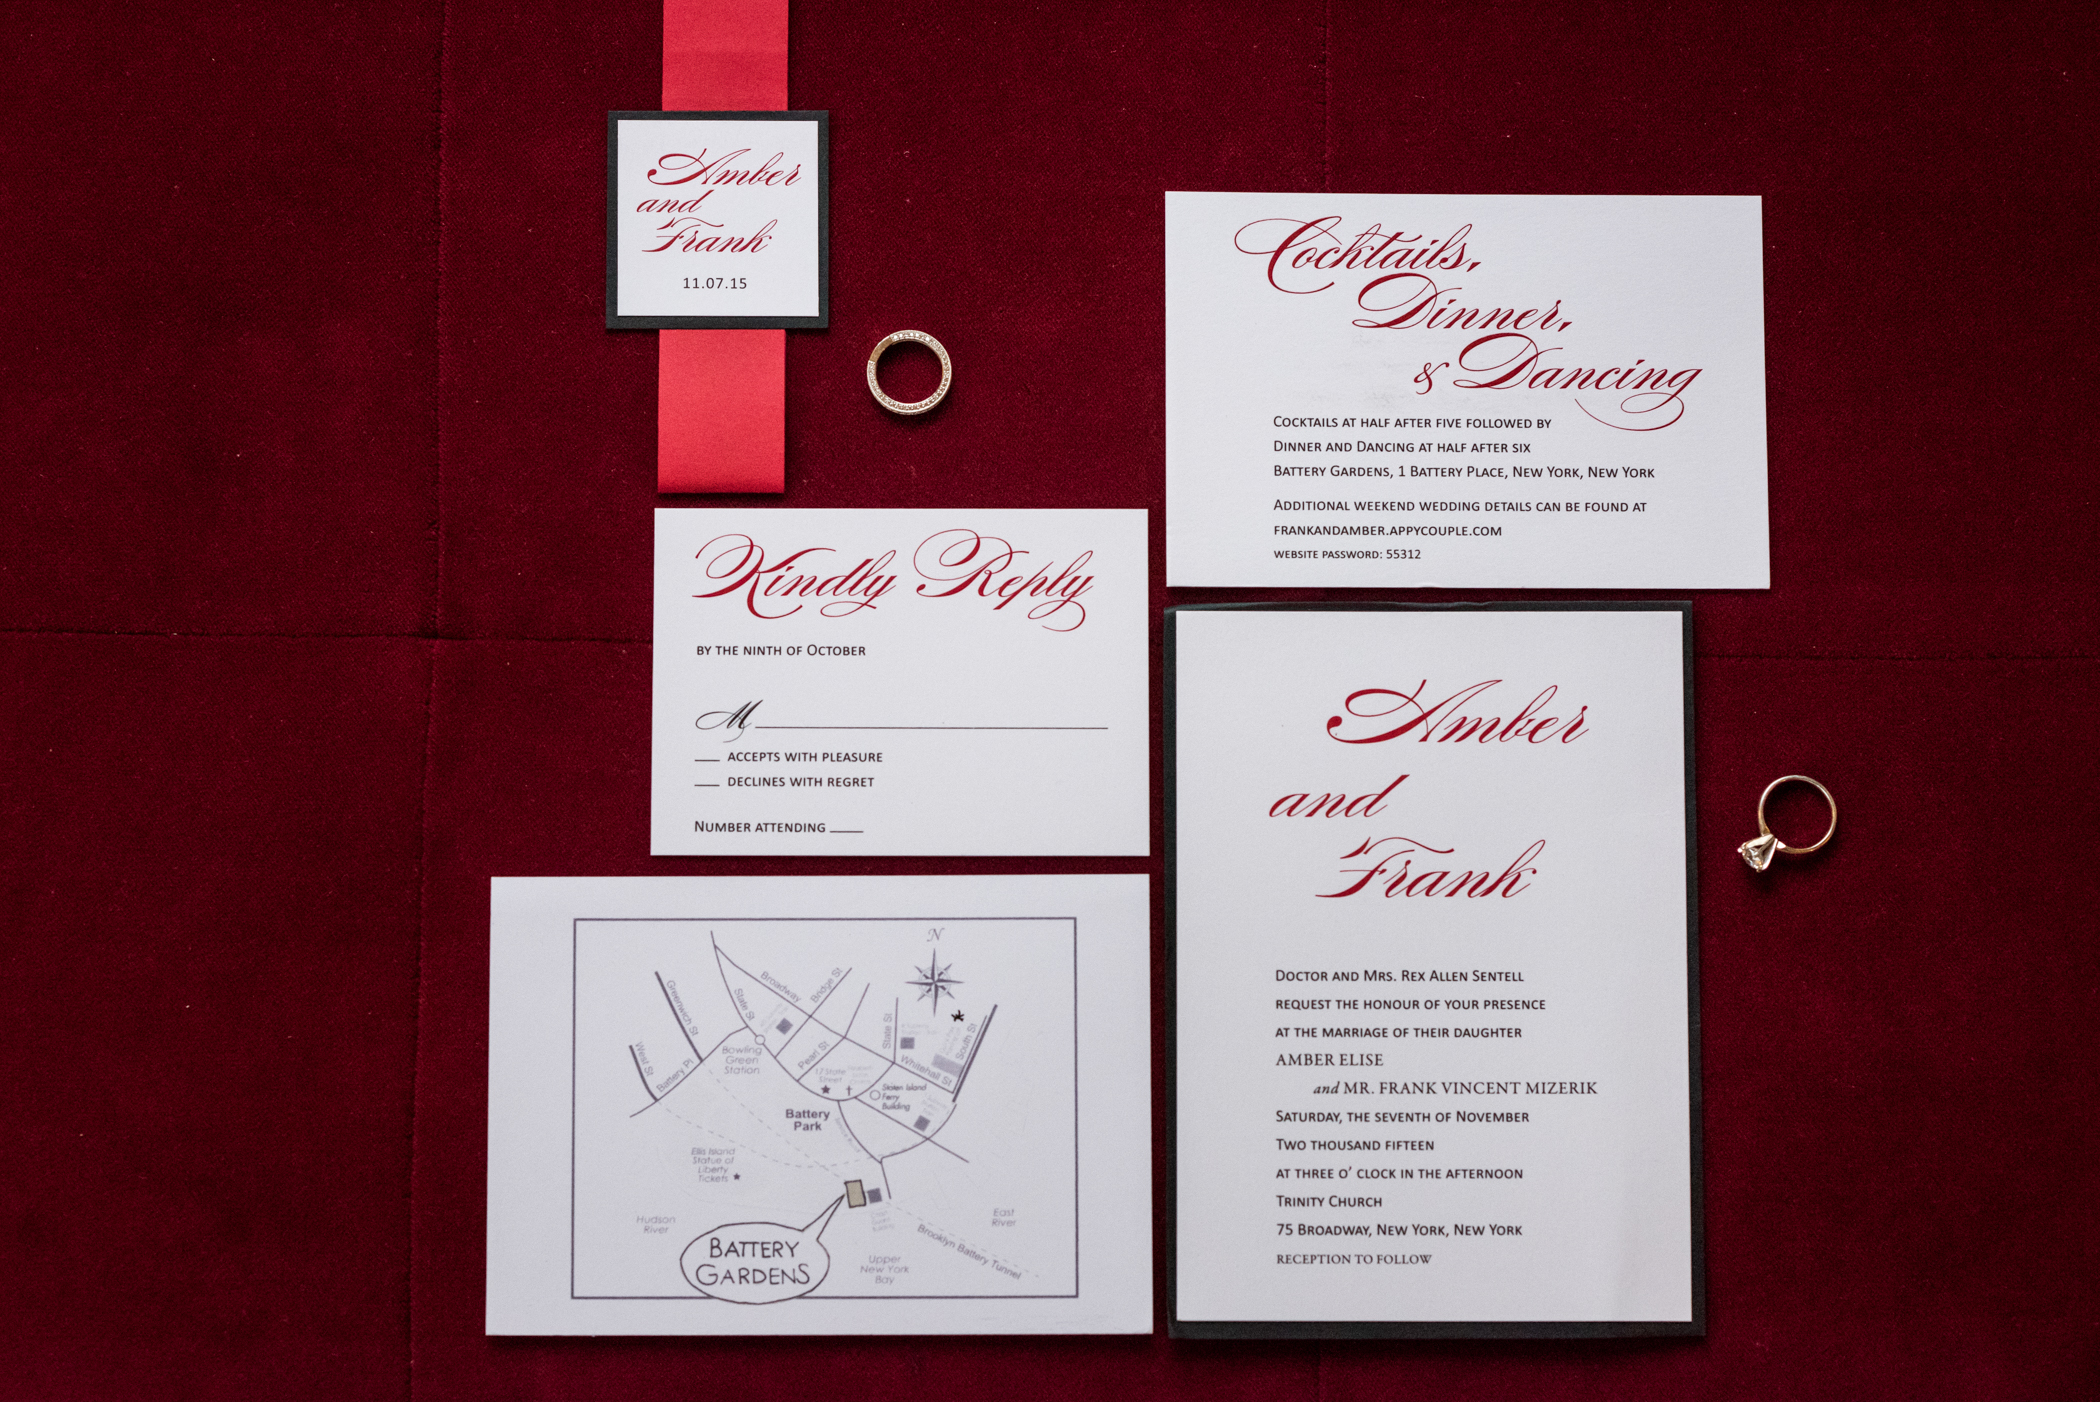 Stefy Hilmer Photography-wedding invitations and wedding rings.jpg